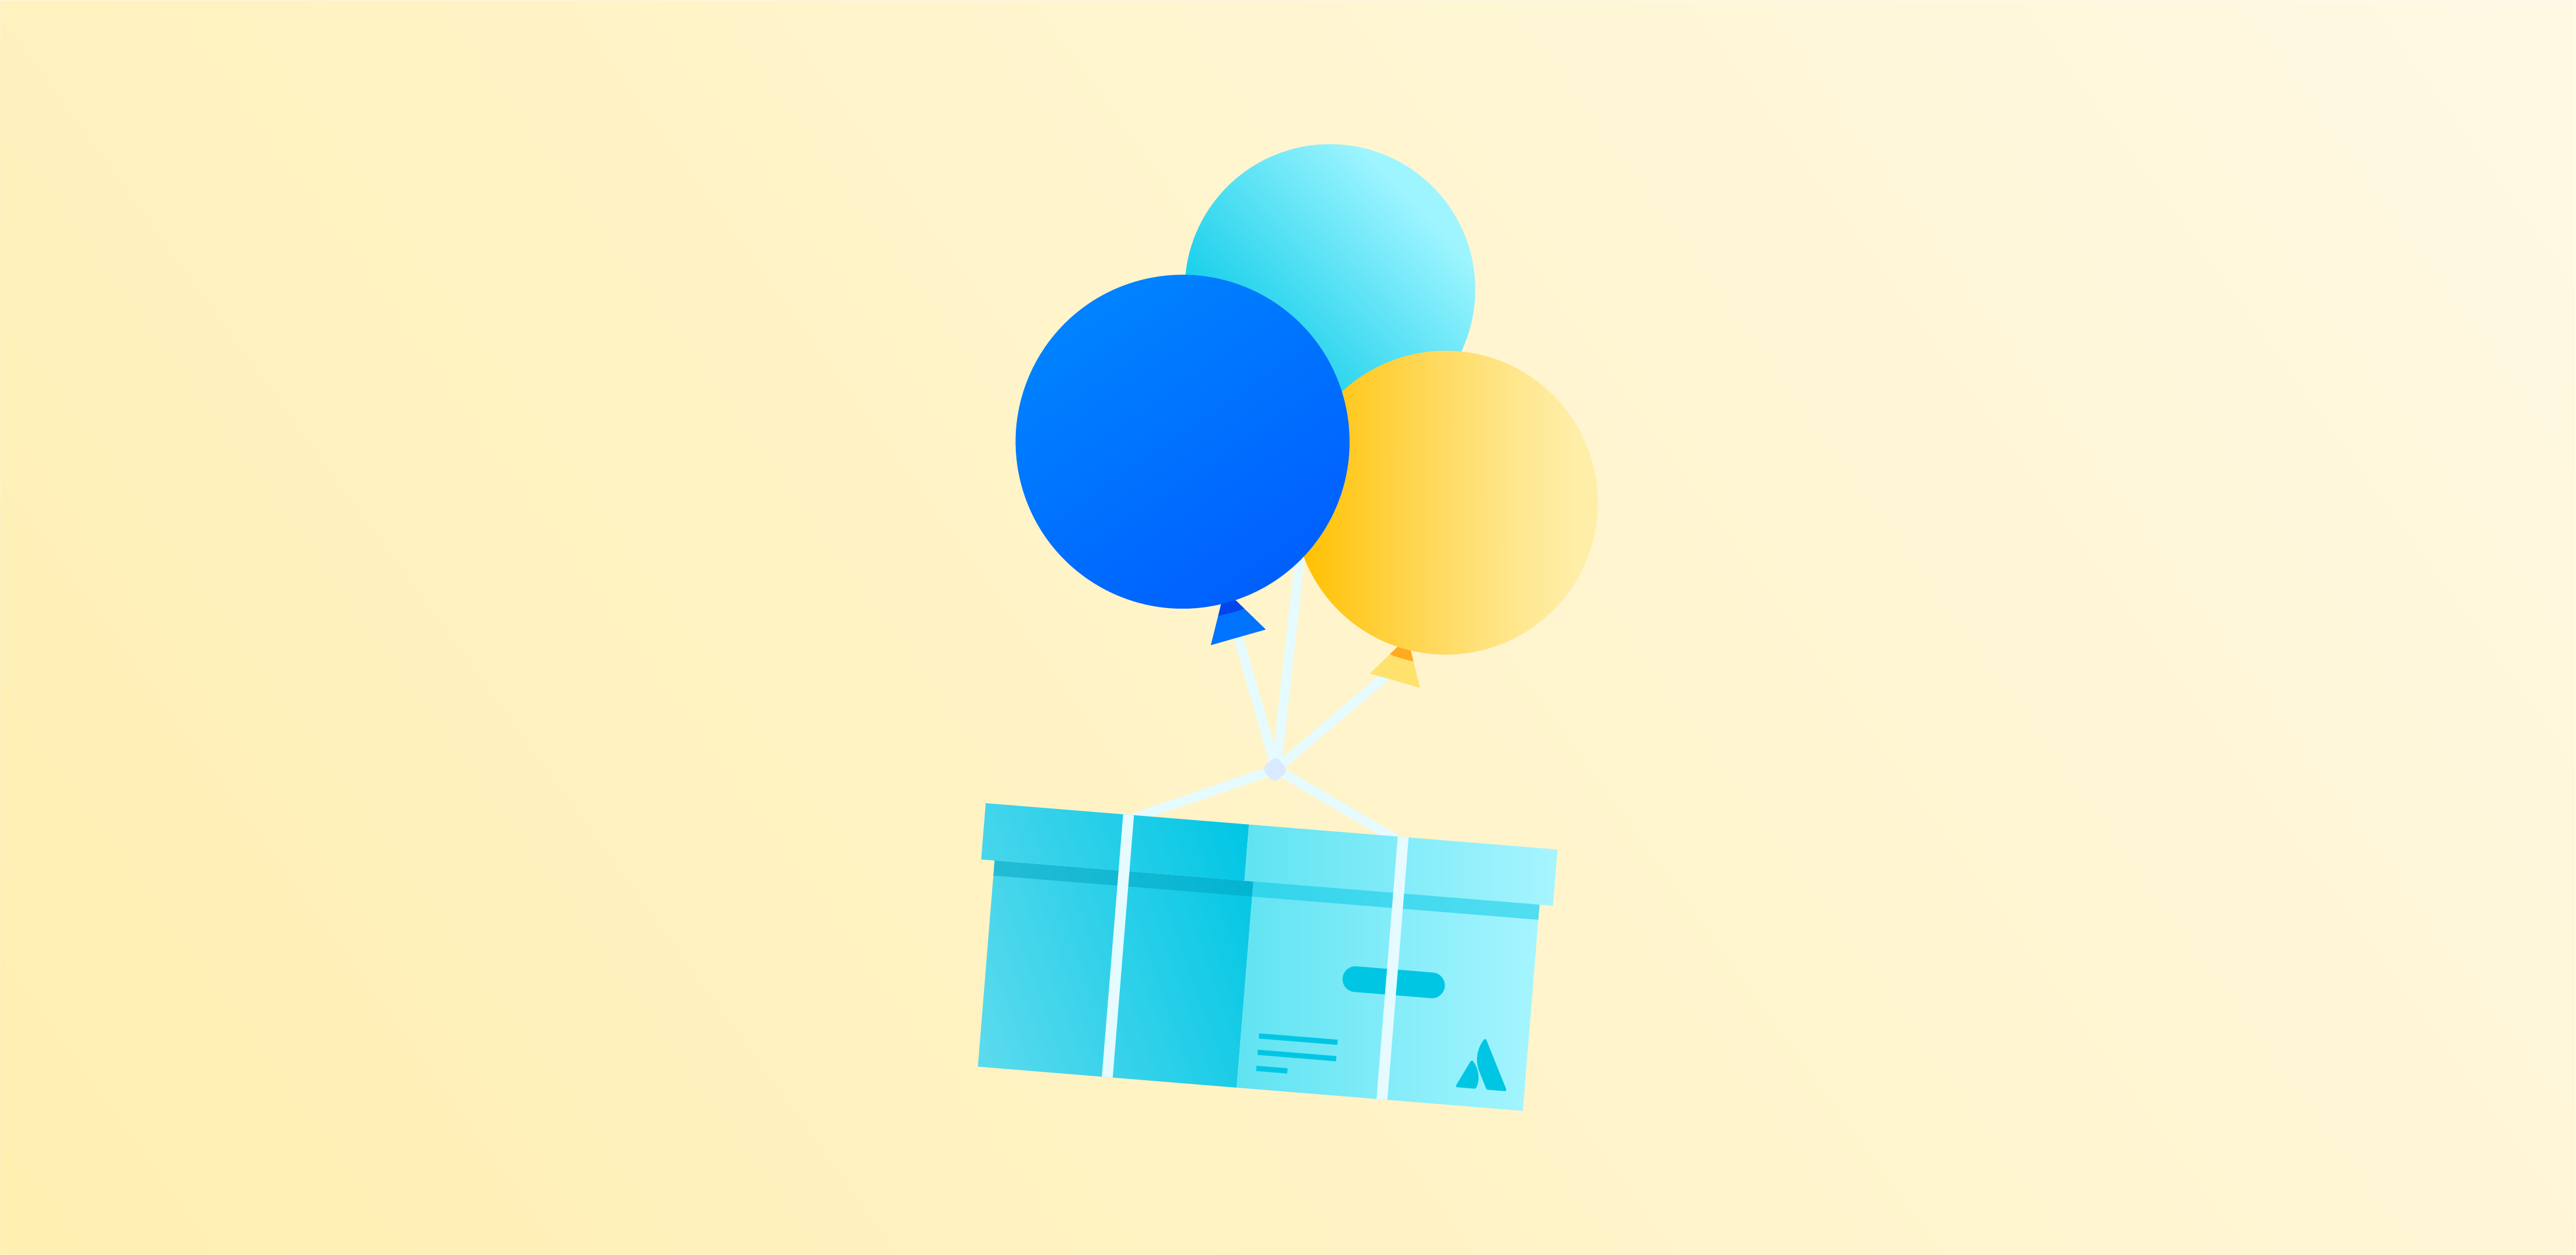 Balloons carrying a crate